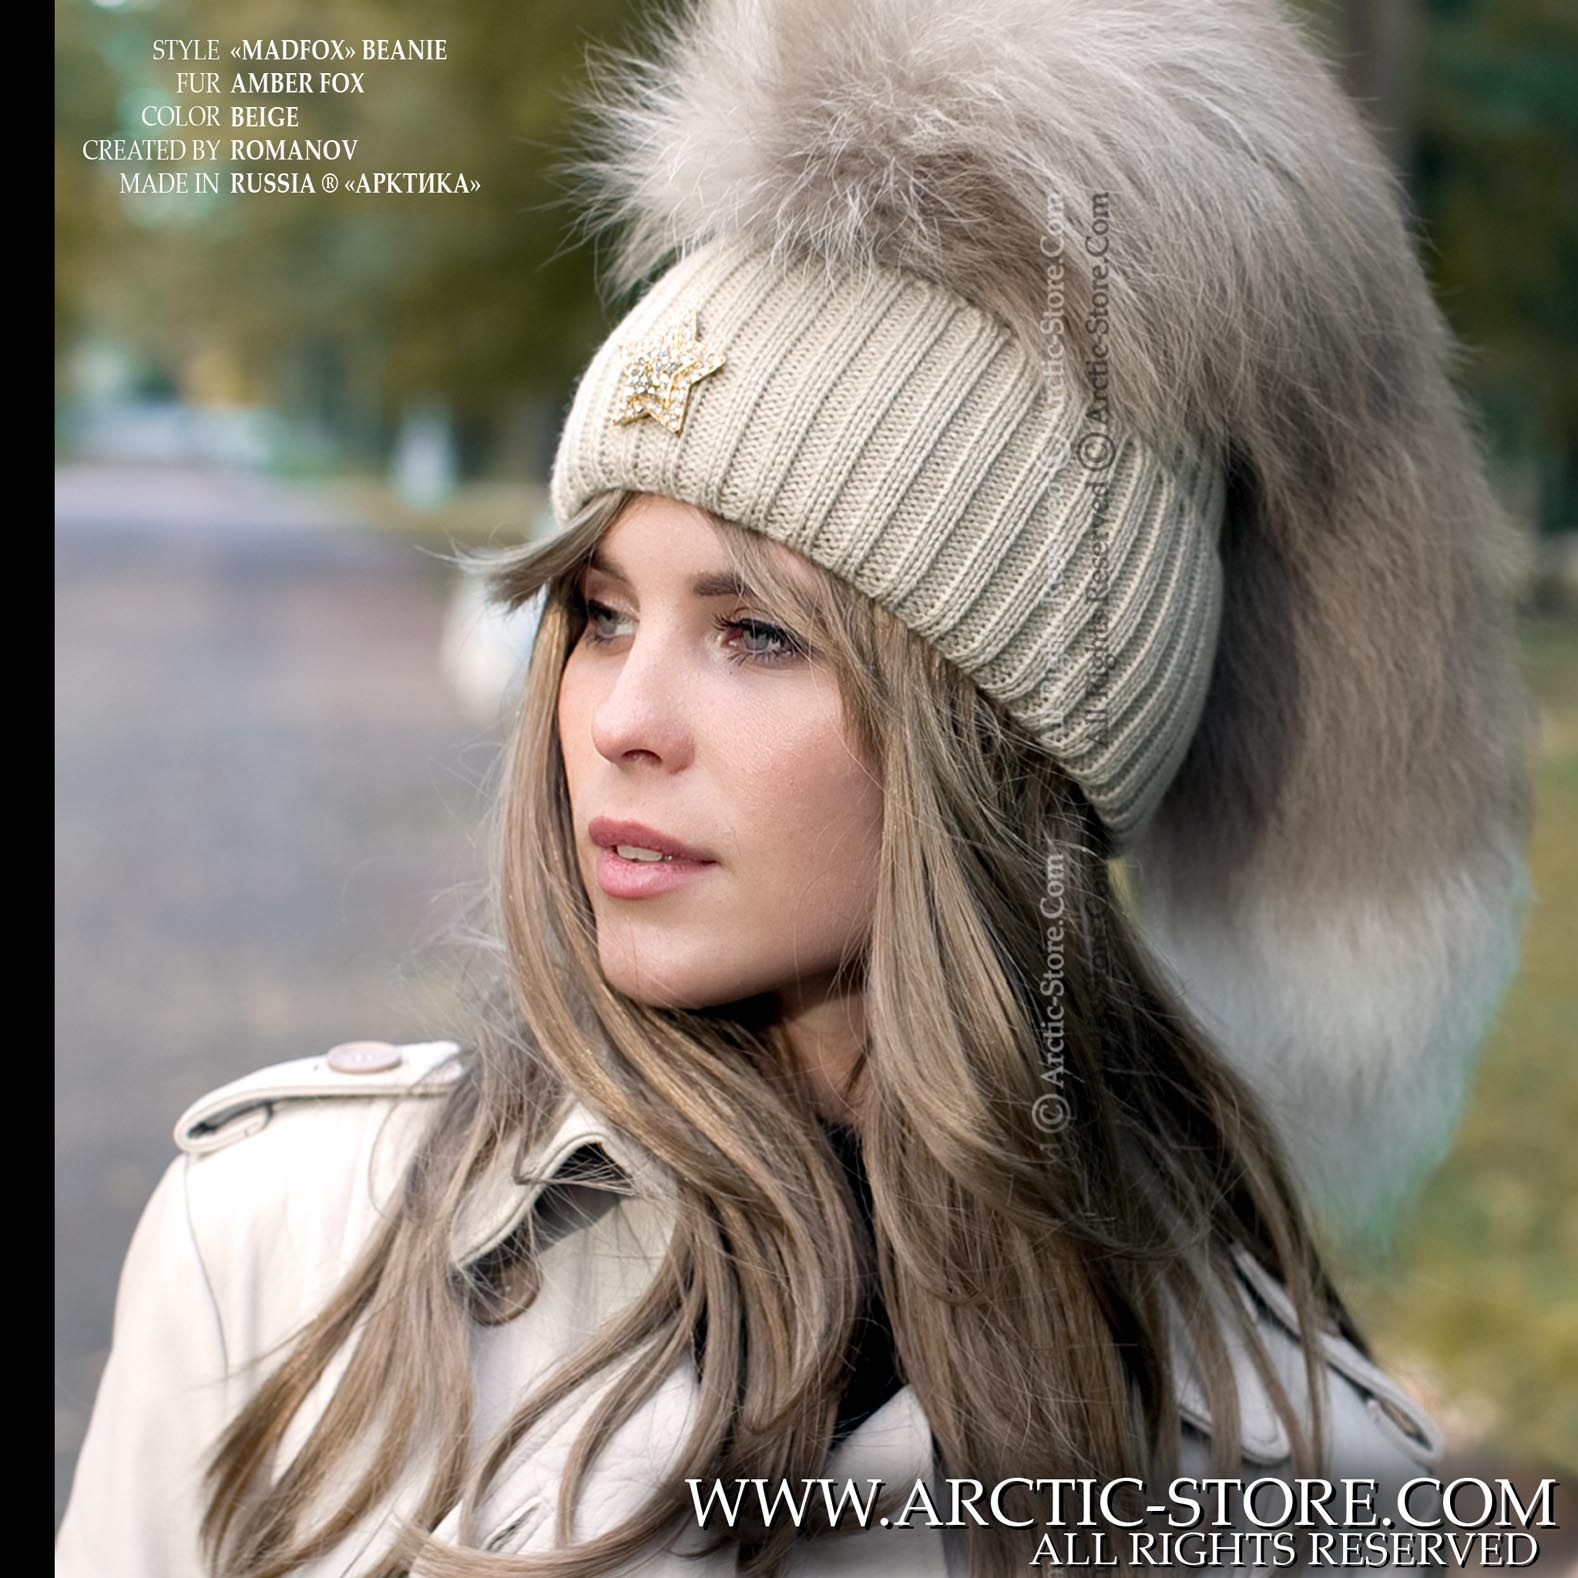 f8e04a877e4 Introducing our latest bold design for the brave fur fashion connoisseur